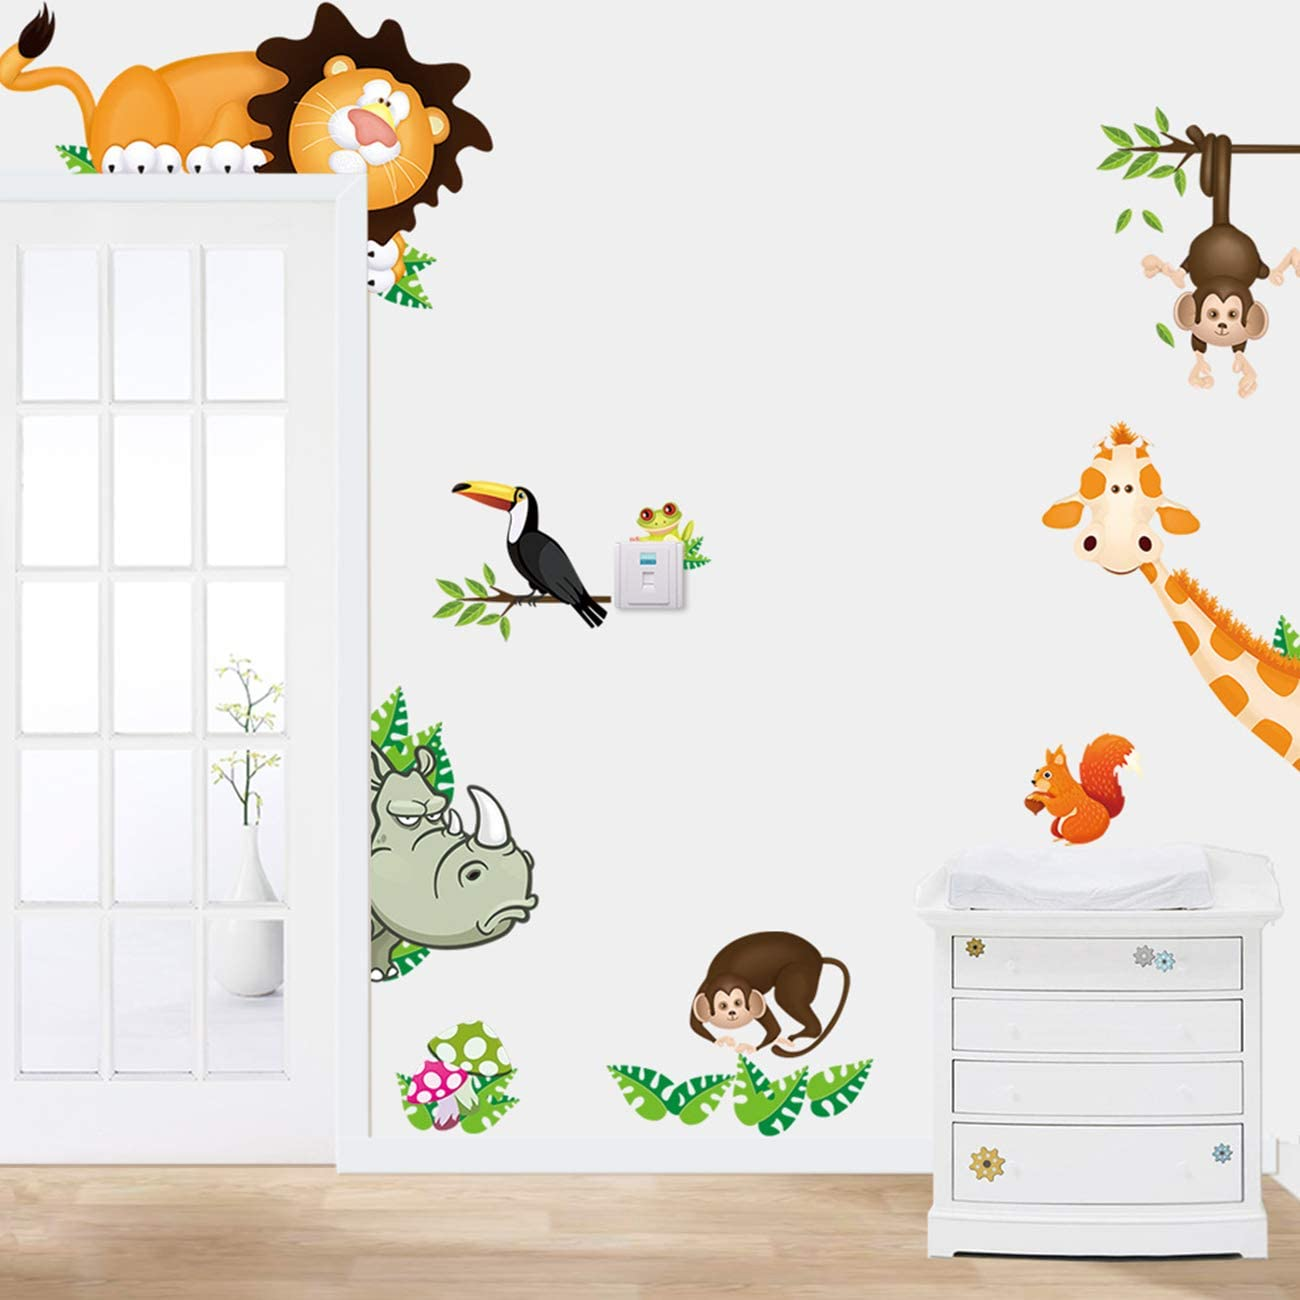 NITCAN Jungle Cartoon Animals Forest Wall Decals for Baby Kids Rooms Home Door Window Decor Cartoon Lion Elephant Giraffee Wall Mural Peel and Stick for Bedroom (#2 Animals Group)